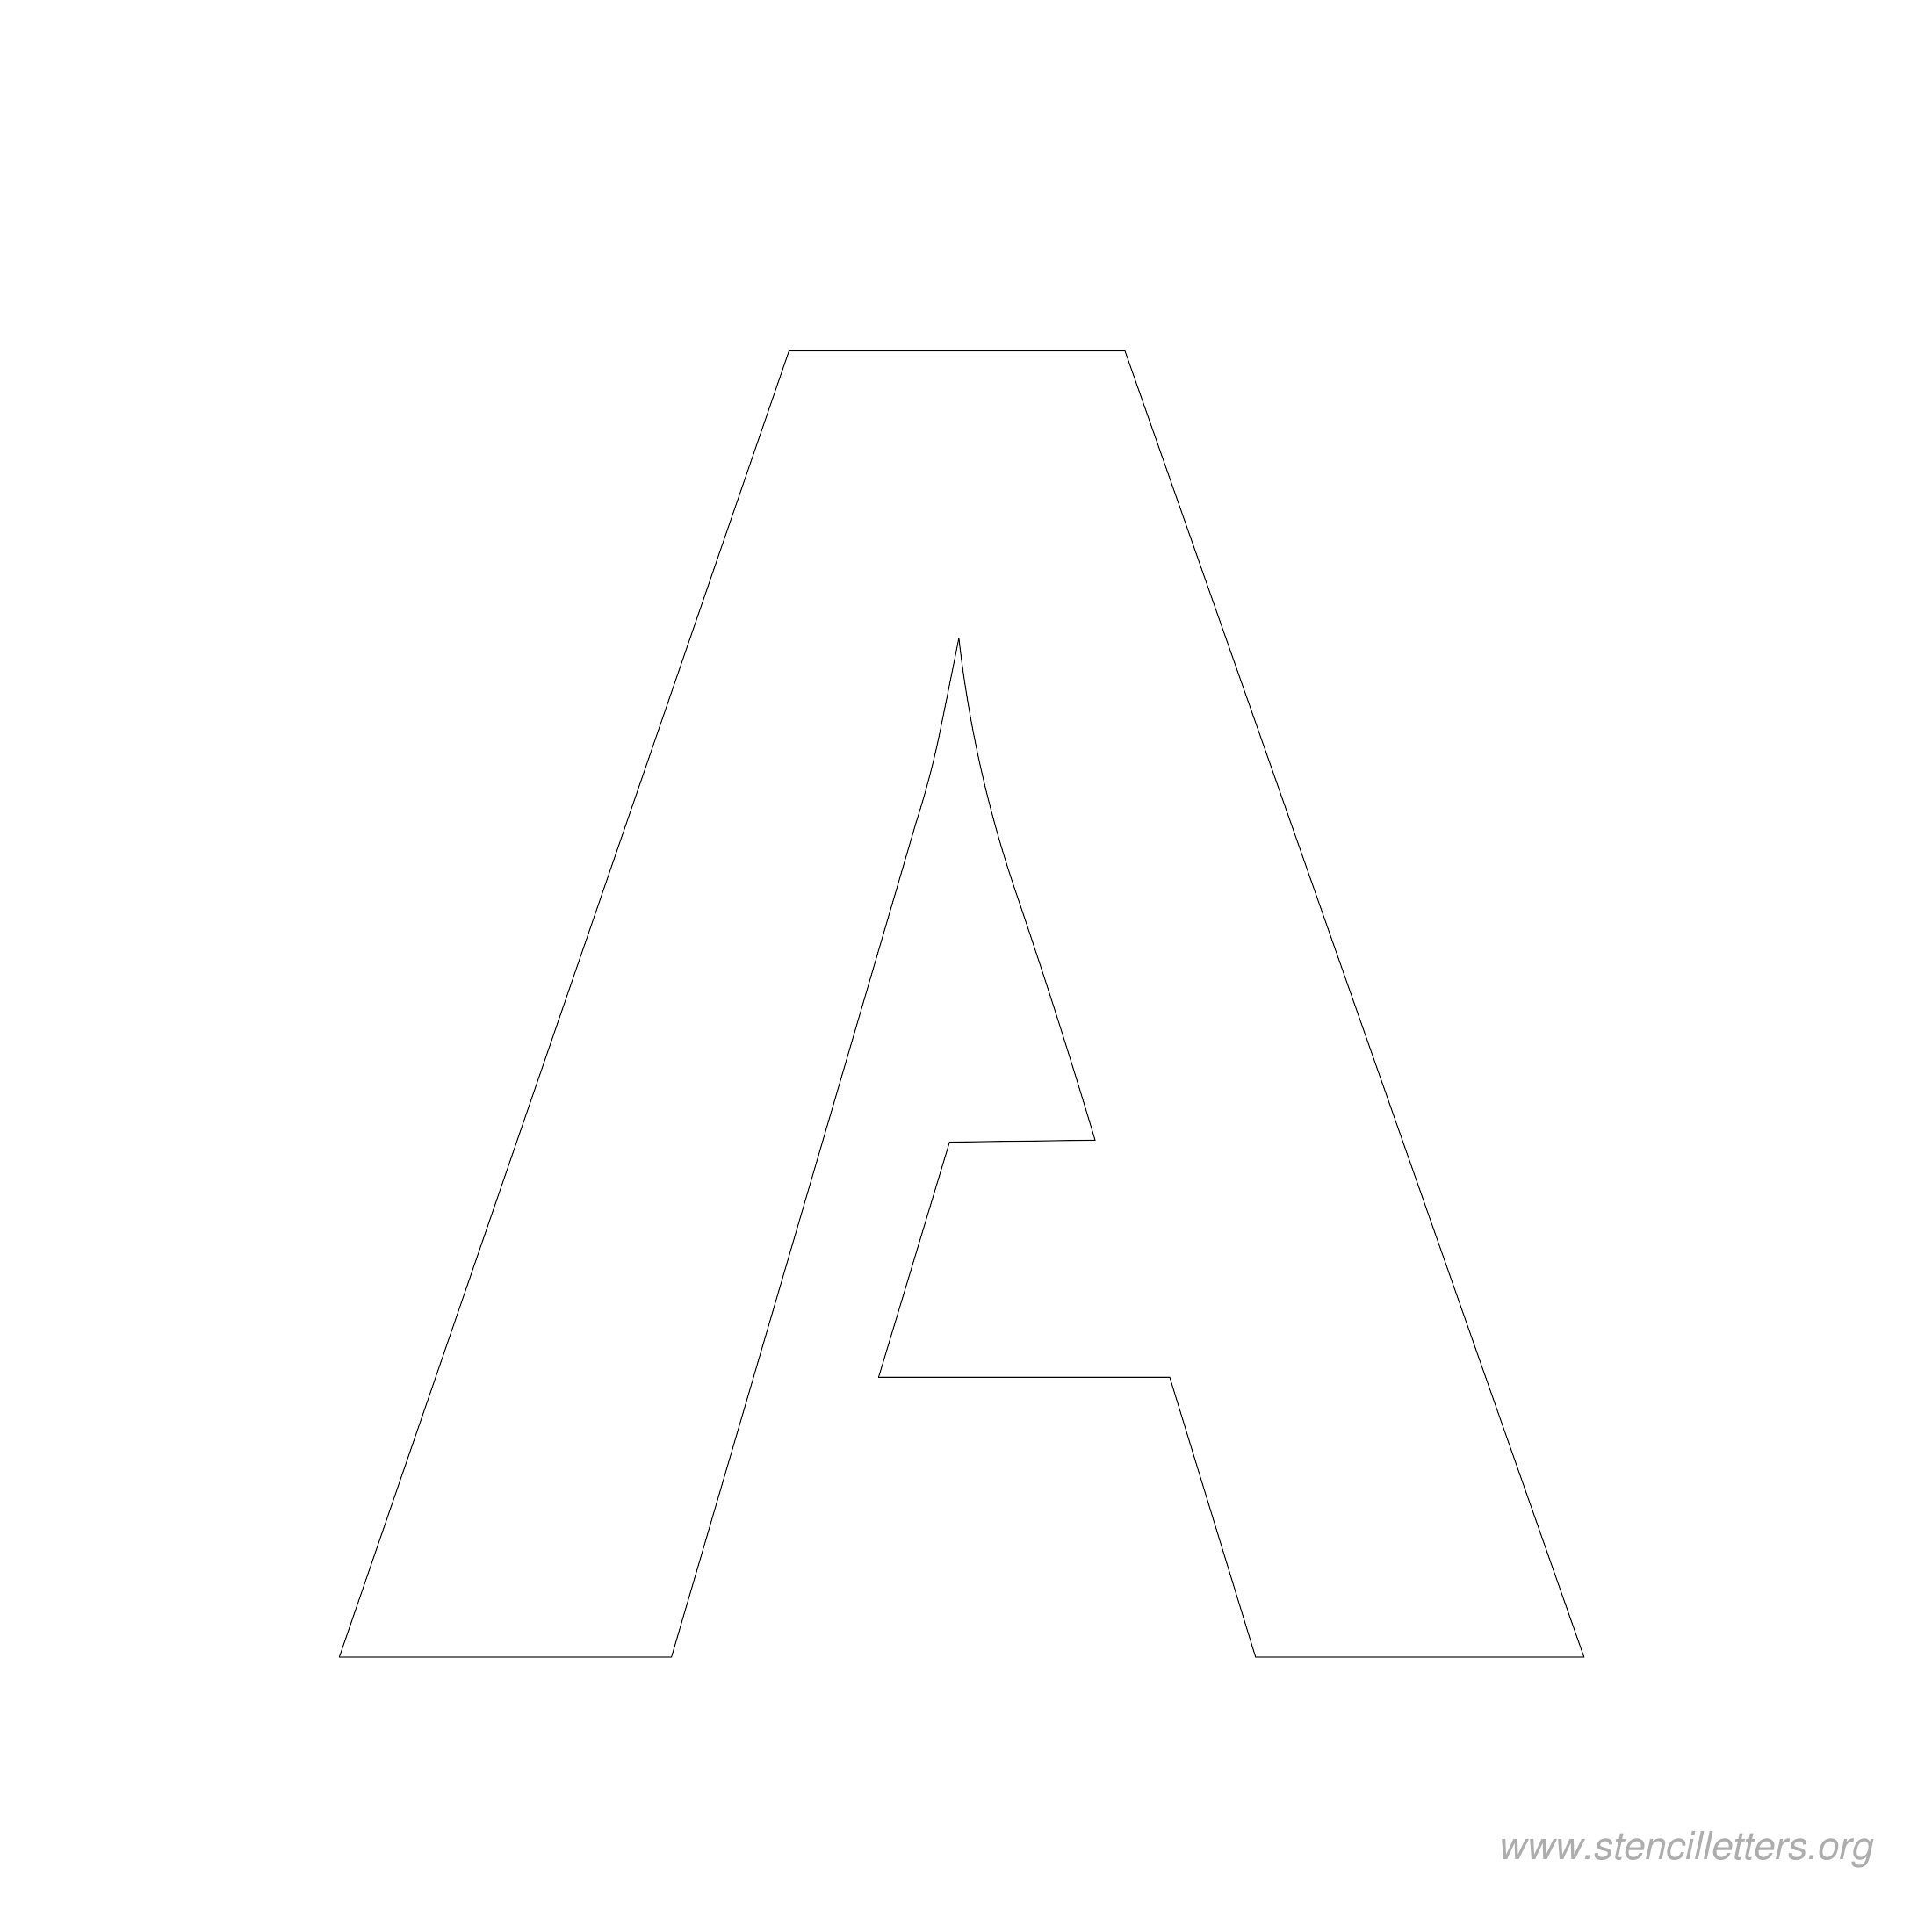 5 Inch Stencil Letters   Stencil Letters Org - Free Printable 10 Inch Letter Stencils